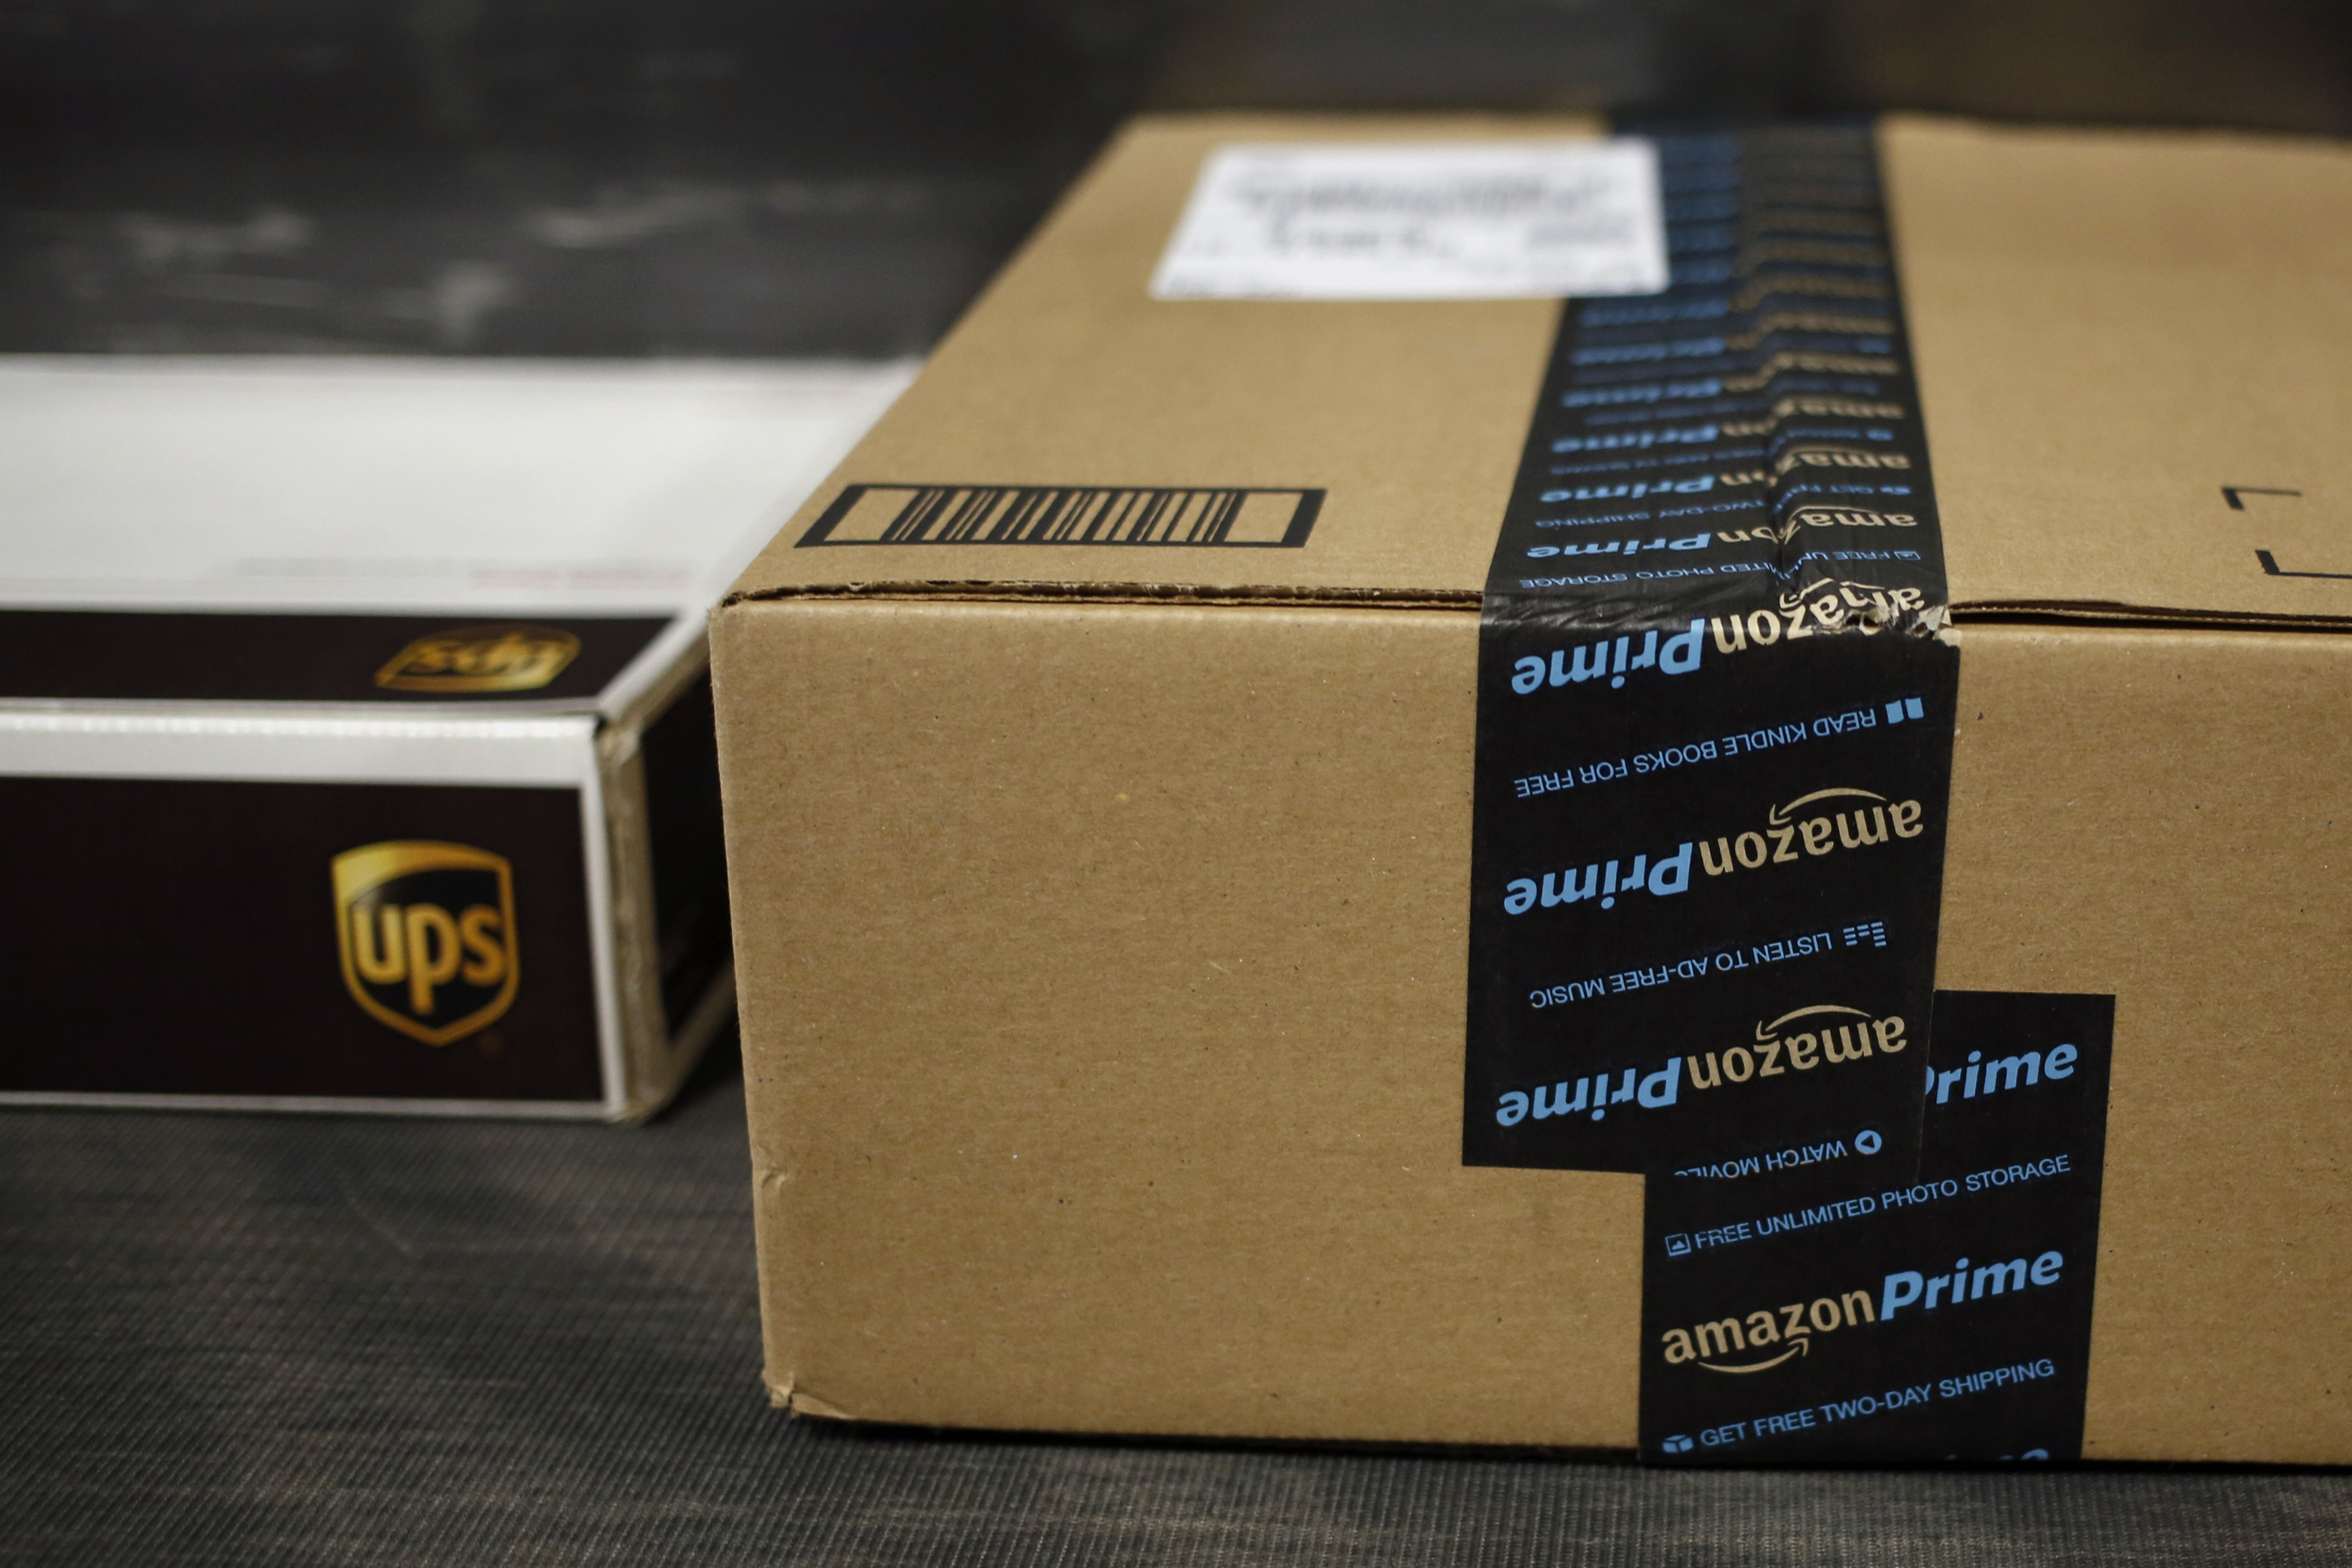 A package shipped from Amazon.com moves down a conveyor belt during the afternoon sort at the United Parcel Service Inc. (UPS) Worldport facility in Louisville, Kentucky, U.S., on Tuesday, April 21, 2015.